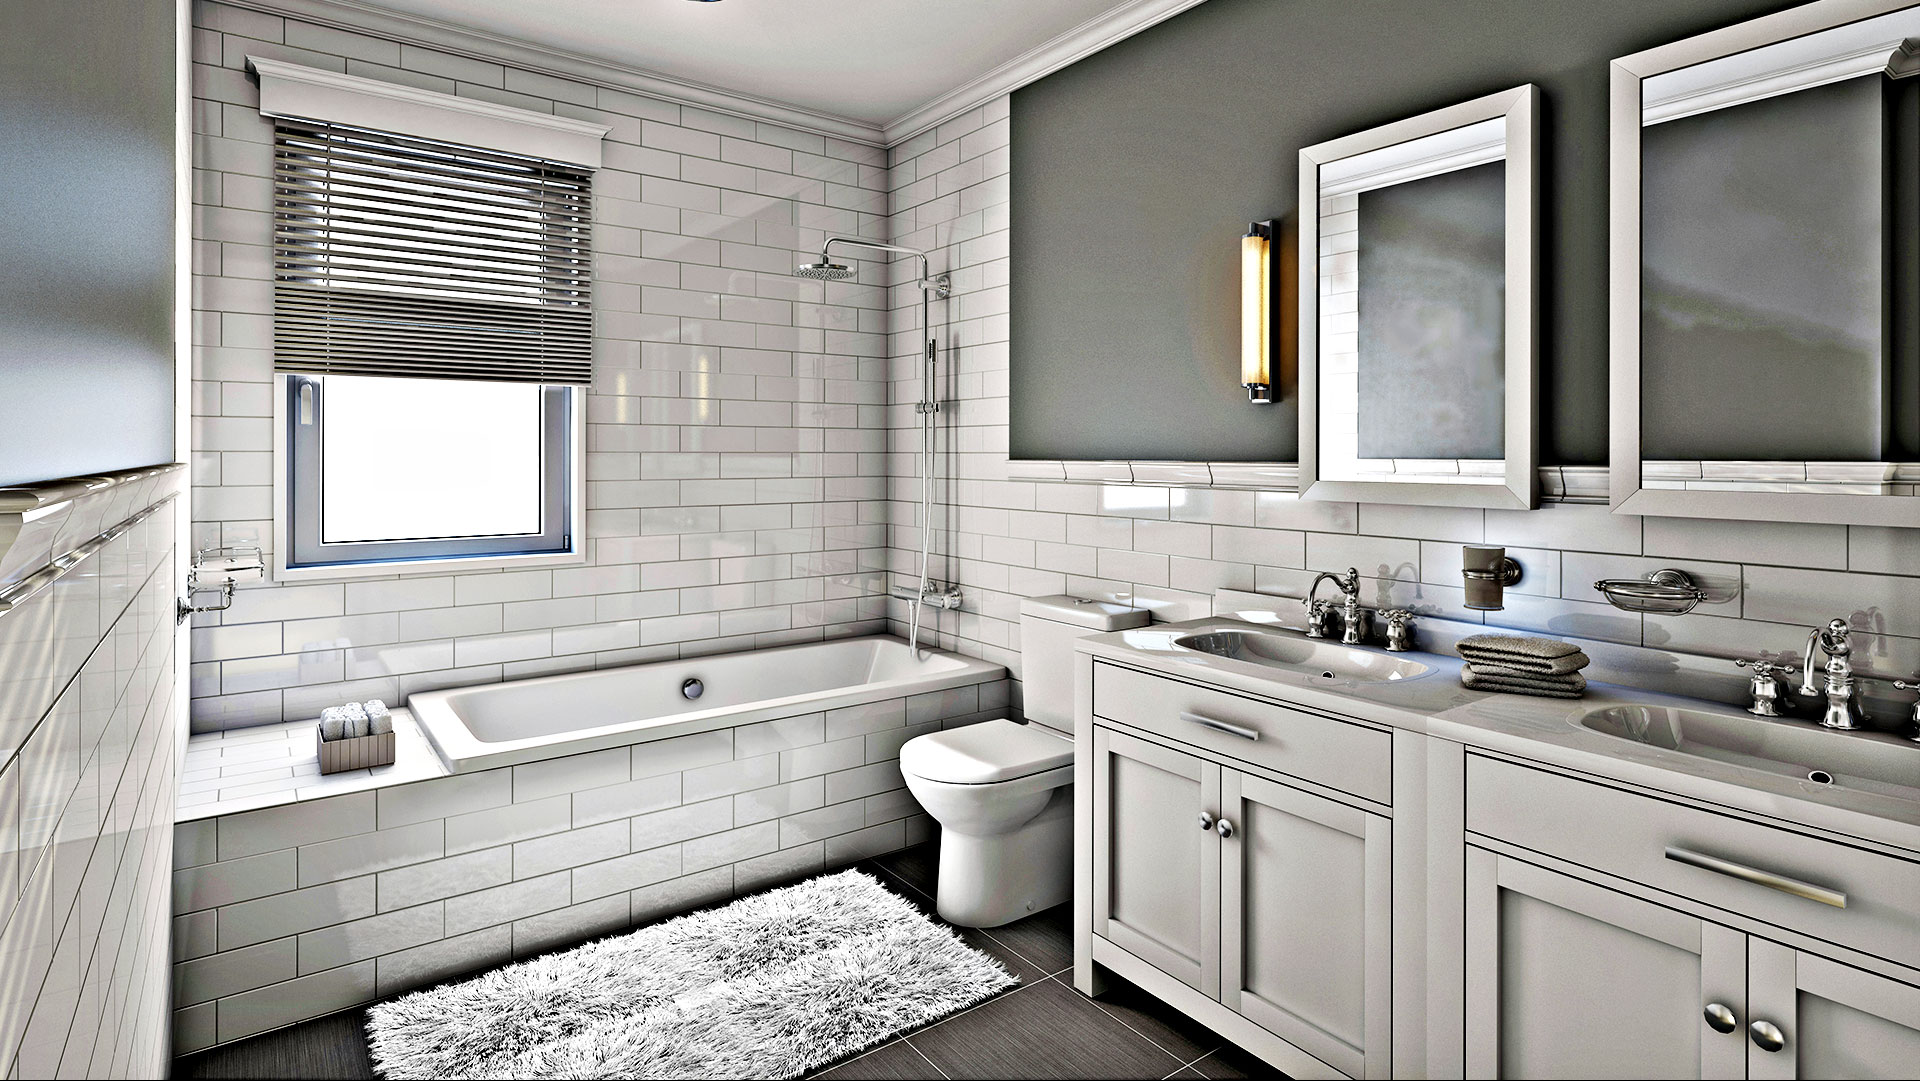 Epic Home Improvements Inc. Remodeled Bathroom